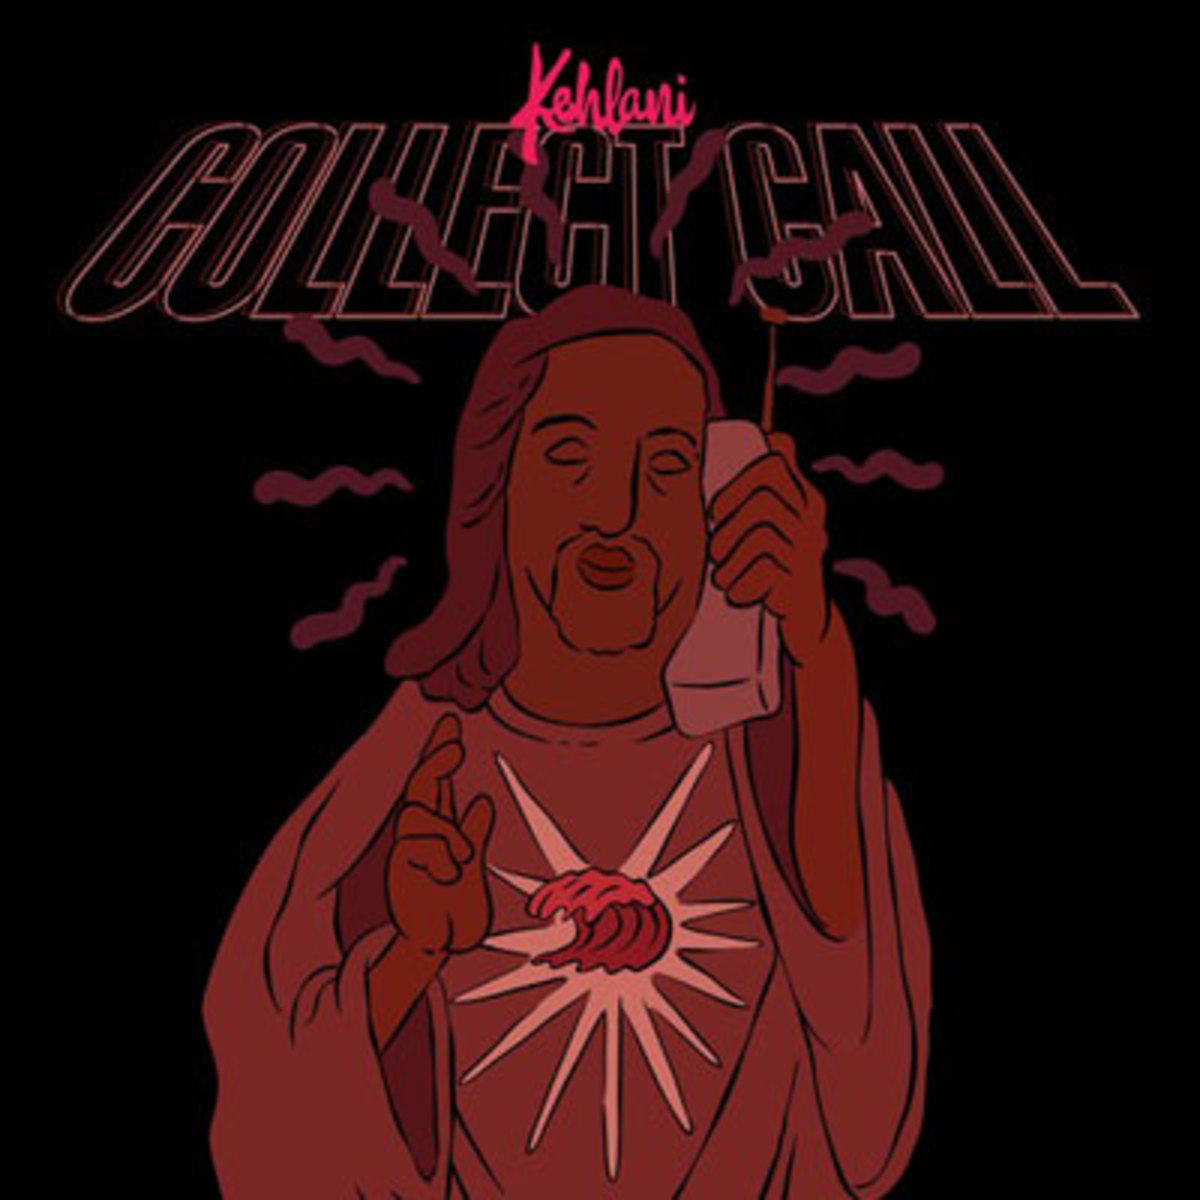 kehlani-collectcall.jpg